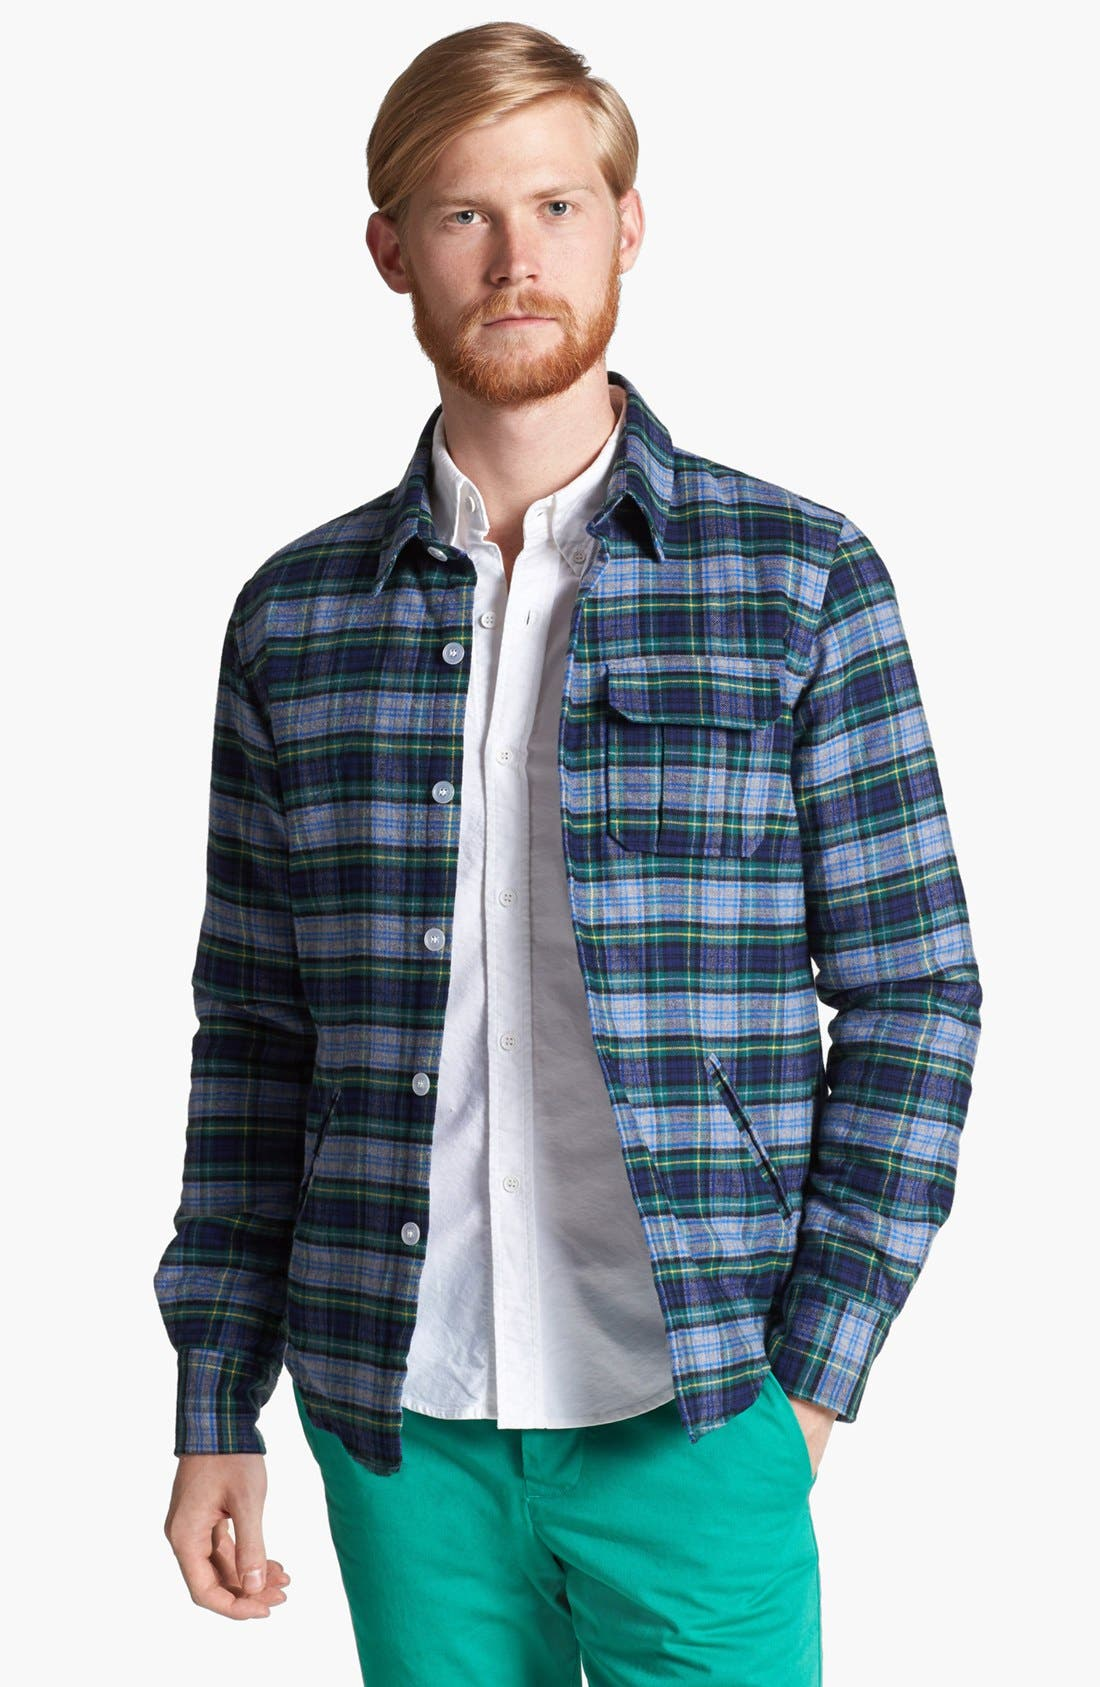 Alternate Image 1 Selected - Band of Outsiders Lightweight Plaid Cotton Flannel Jacket